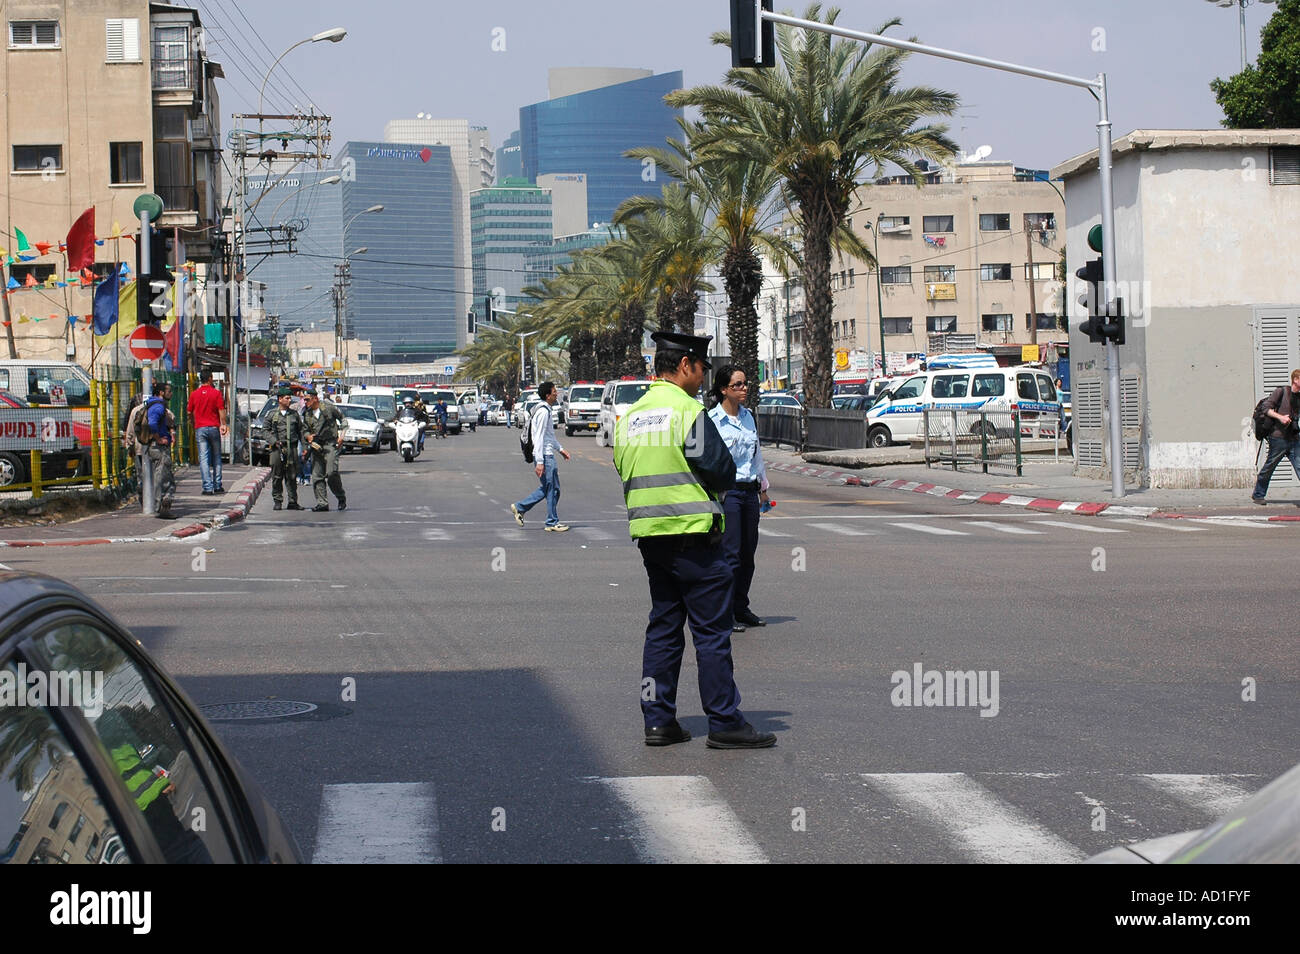 Tel Aviv Israel after a suicide bomber exploded in the street on April 17th 2006 killing 9 mostly foreigners - Stock Image